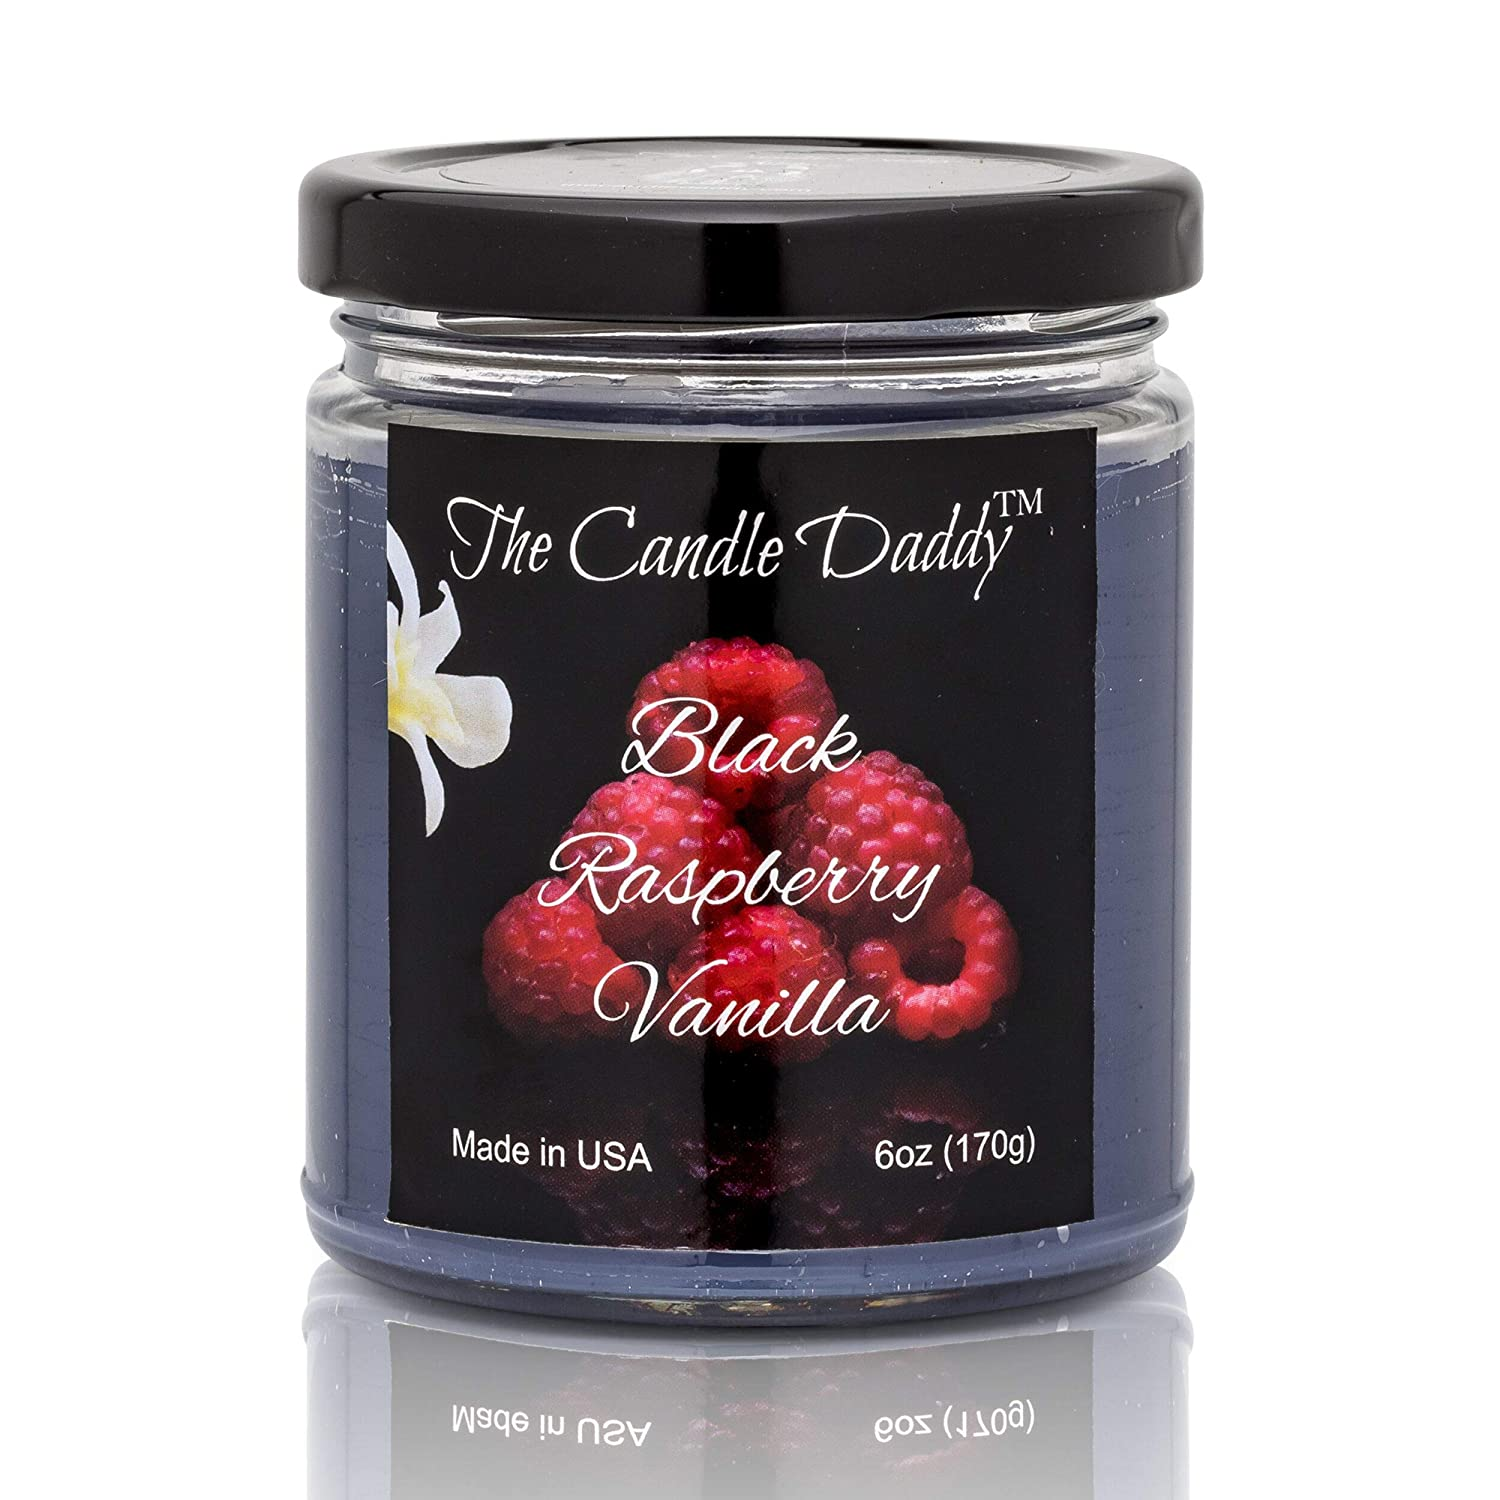 Black Raspberry Vanilla Scented Candle - 6 Ounce Jar Candle- Hand Poured in Indiana